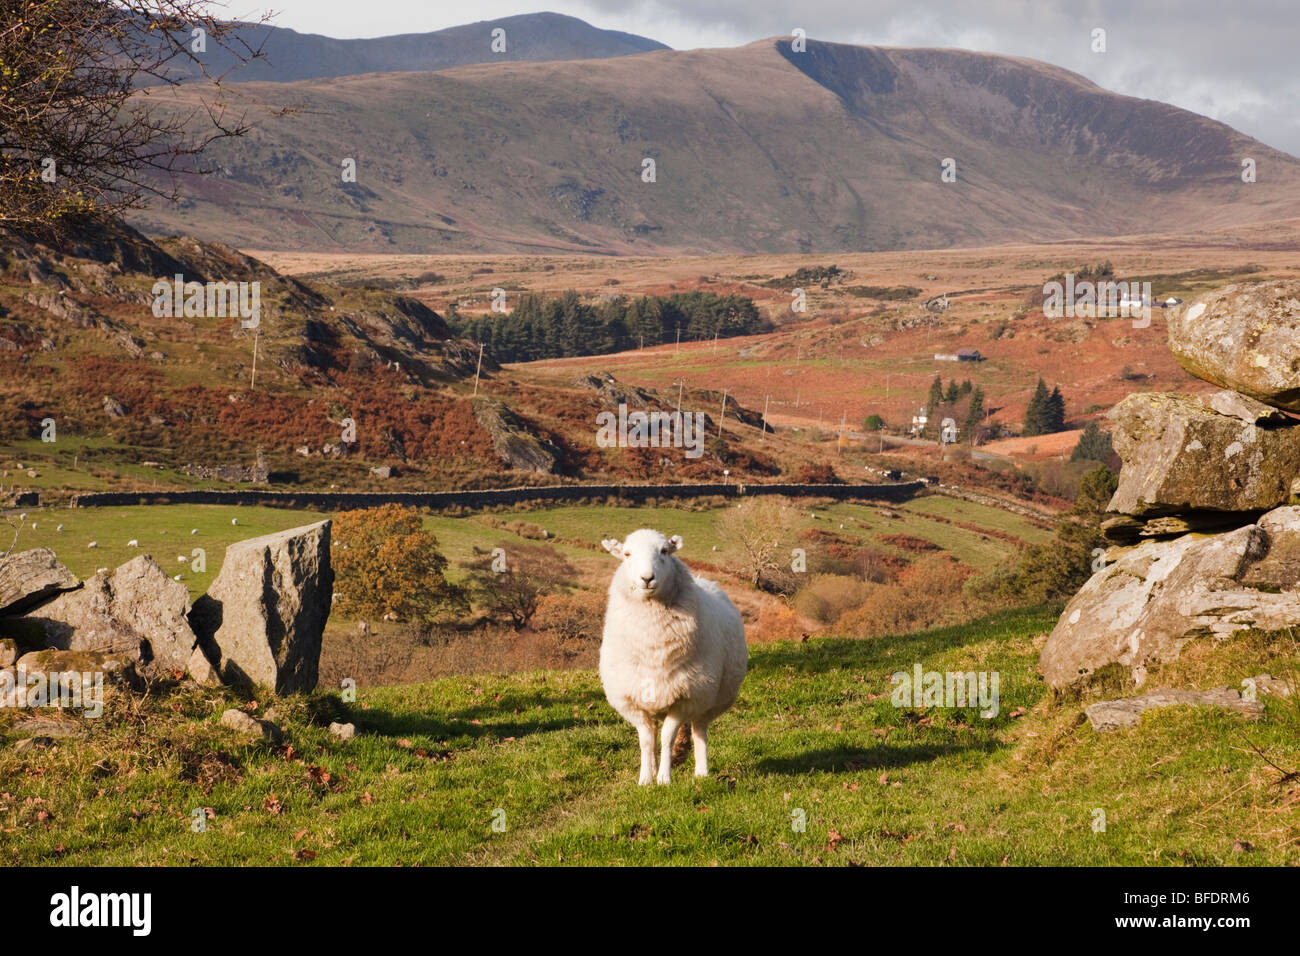 A Welsh Mountain Sheep standing by a stone wall on a hillfarm in Snowdonia countryside. Capel Curig Conwy North - Stock Image